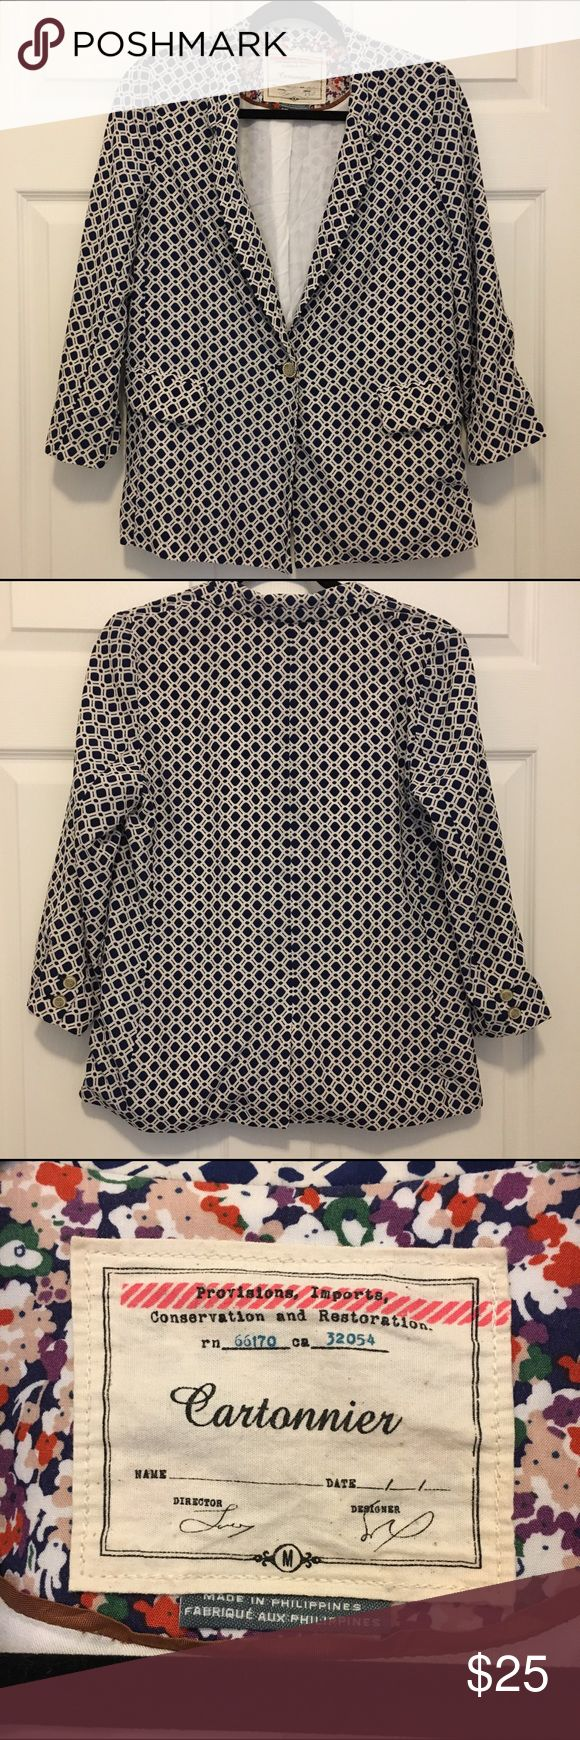 Cartonnier Anthropologie Geometric Blazer Size M Cartonnier by Anthropologie •Boyfriend style, single button •Navy & White Geometric Print •Beige artful front buttons & on cuff •Excellent pre-owned condition •No holes, snags, rips or stains   •Smoke-free home  Please review all photos to know exactly what you are purchasing. We can post more photos if needed.  If we forgot anything, just tag us and ask! 💋  No 🅿️🅿️ No Ⓜ️ 🚫 Trades Anthropologie Jackets & Coats